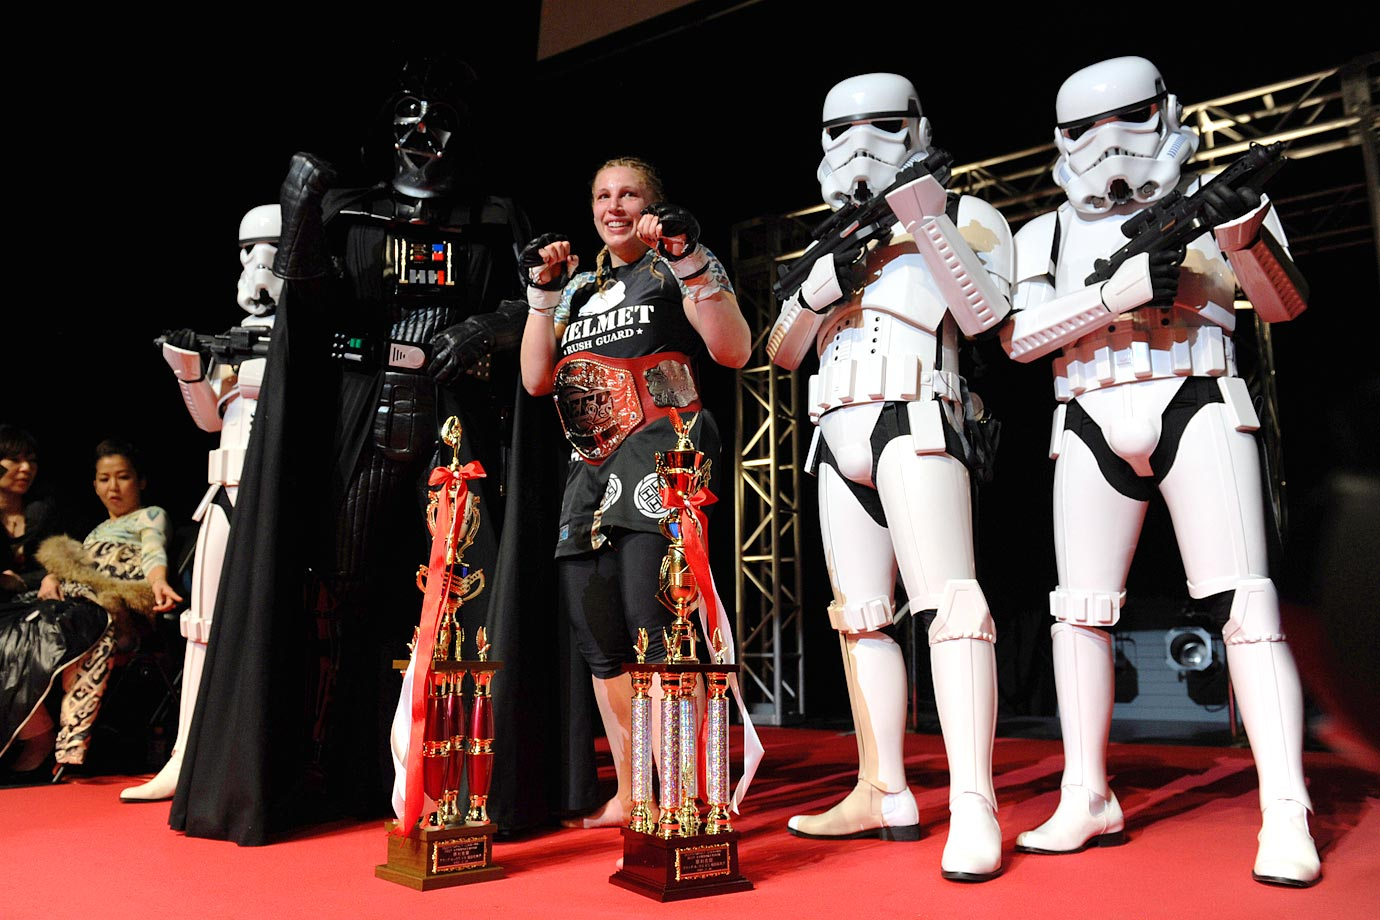 MMA fighter Amanda Lucas, daughter of Star Wars visionary George Lucas, poses with Darth Vader and several stormtroopers after earning her first MMA championship on Feb. 18, 2012 at Deep 57 in Japan.